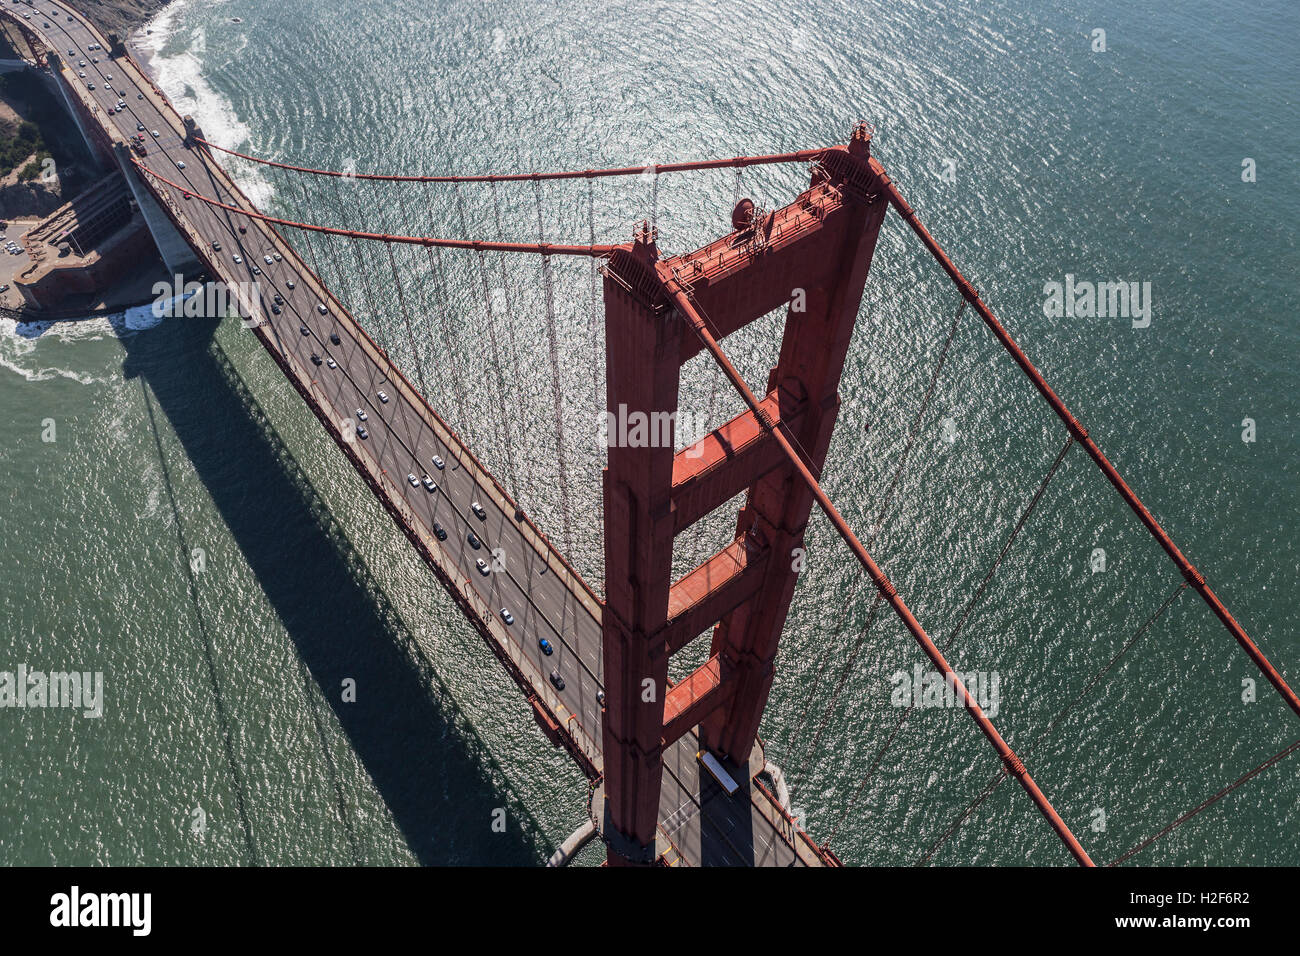 Aerial view of the Golden Gate bridge near San Francisco, California. - Stock Image